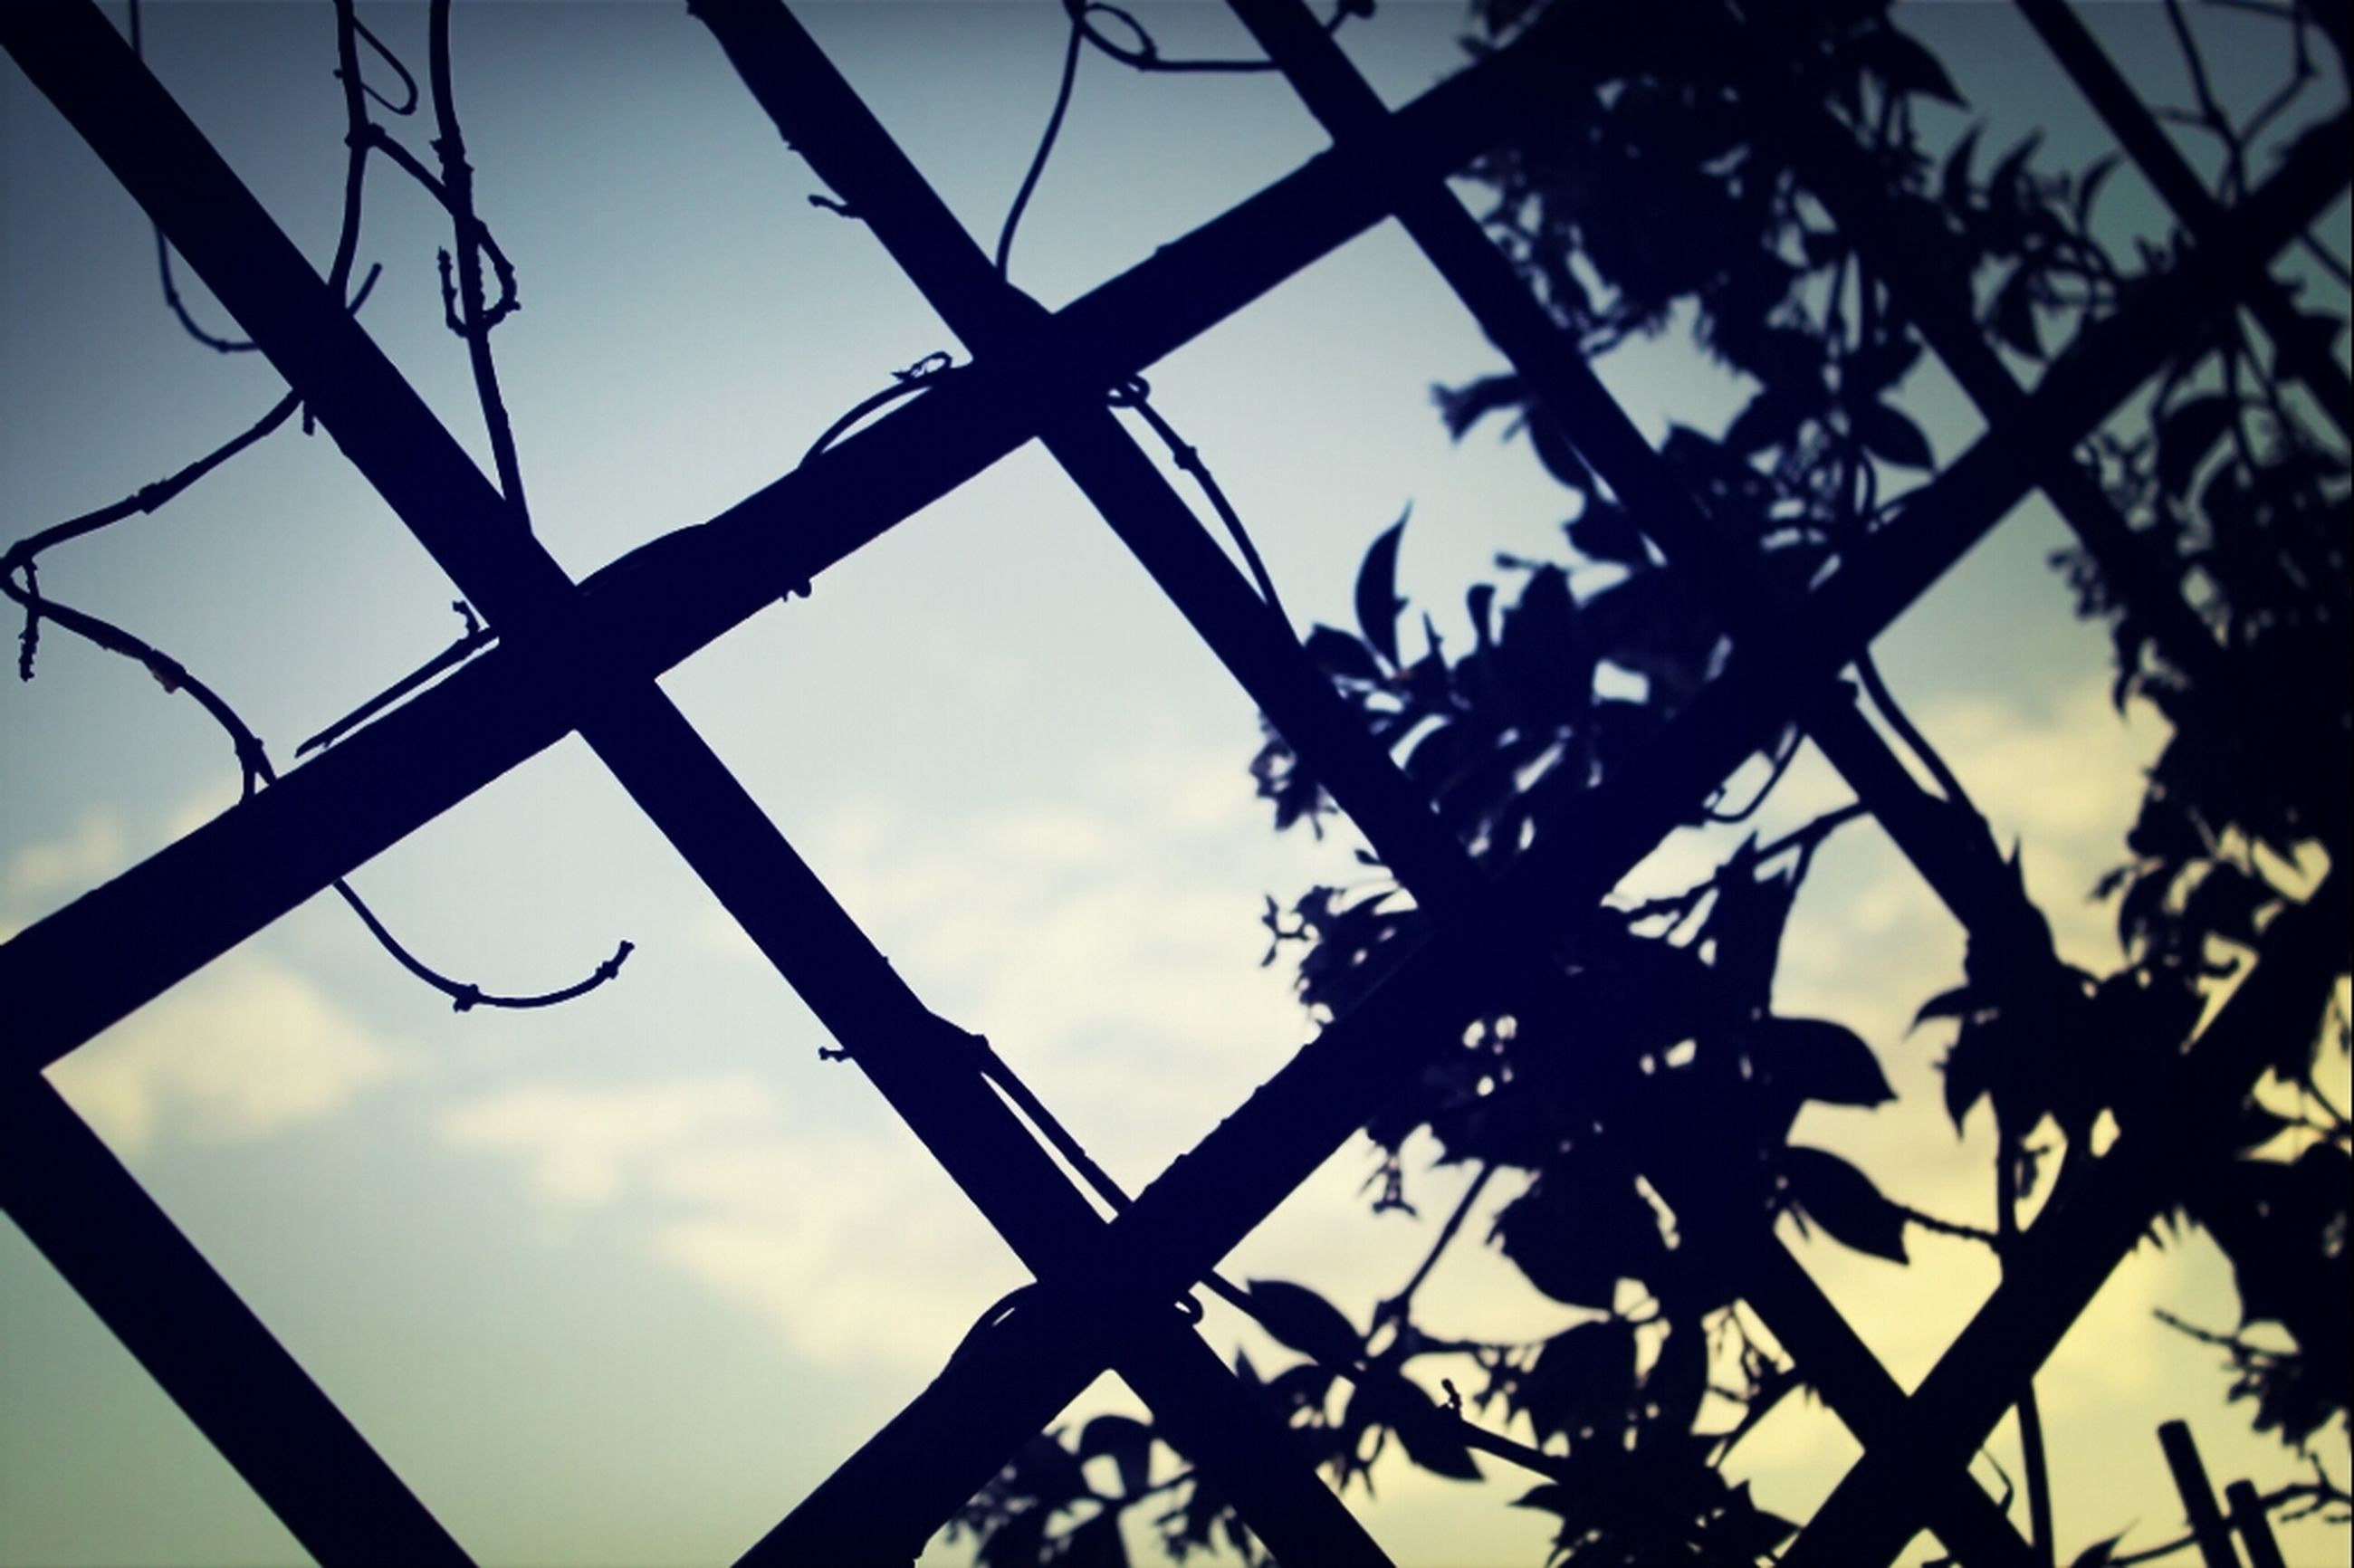 low angle view, silhouette, sky, metal, metallic, nature, sunset, cloud - sky, fence, outdoors, protection, connection, pattern, no people, day, close-up, sunlight, safety, cloud, dusk